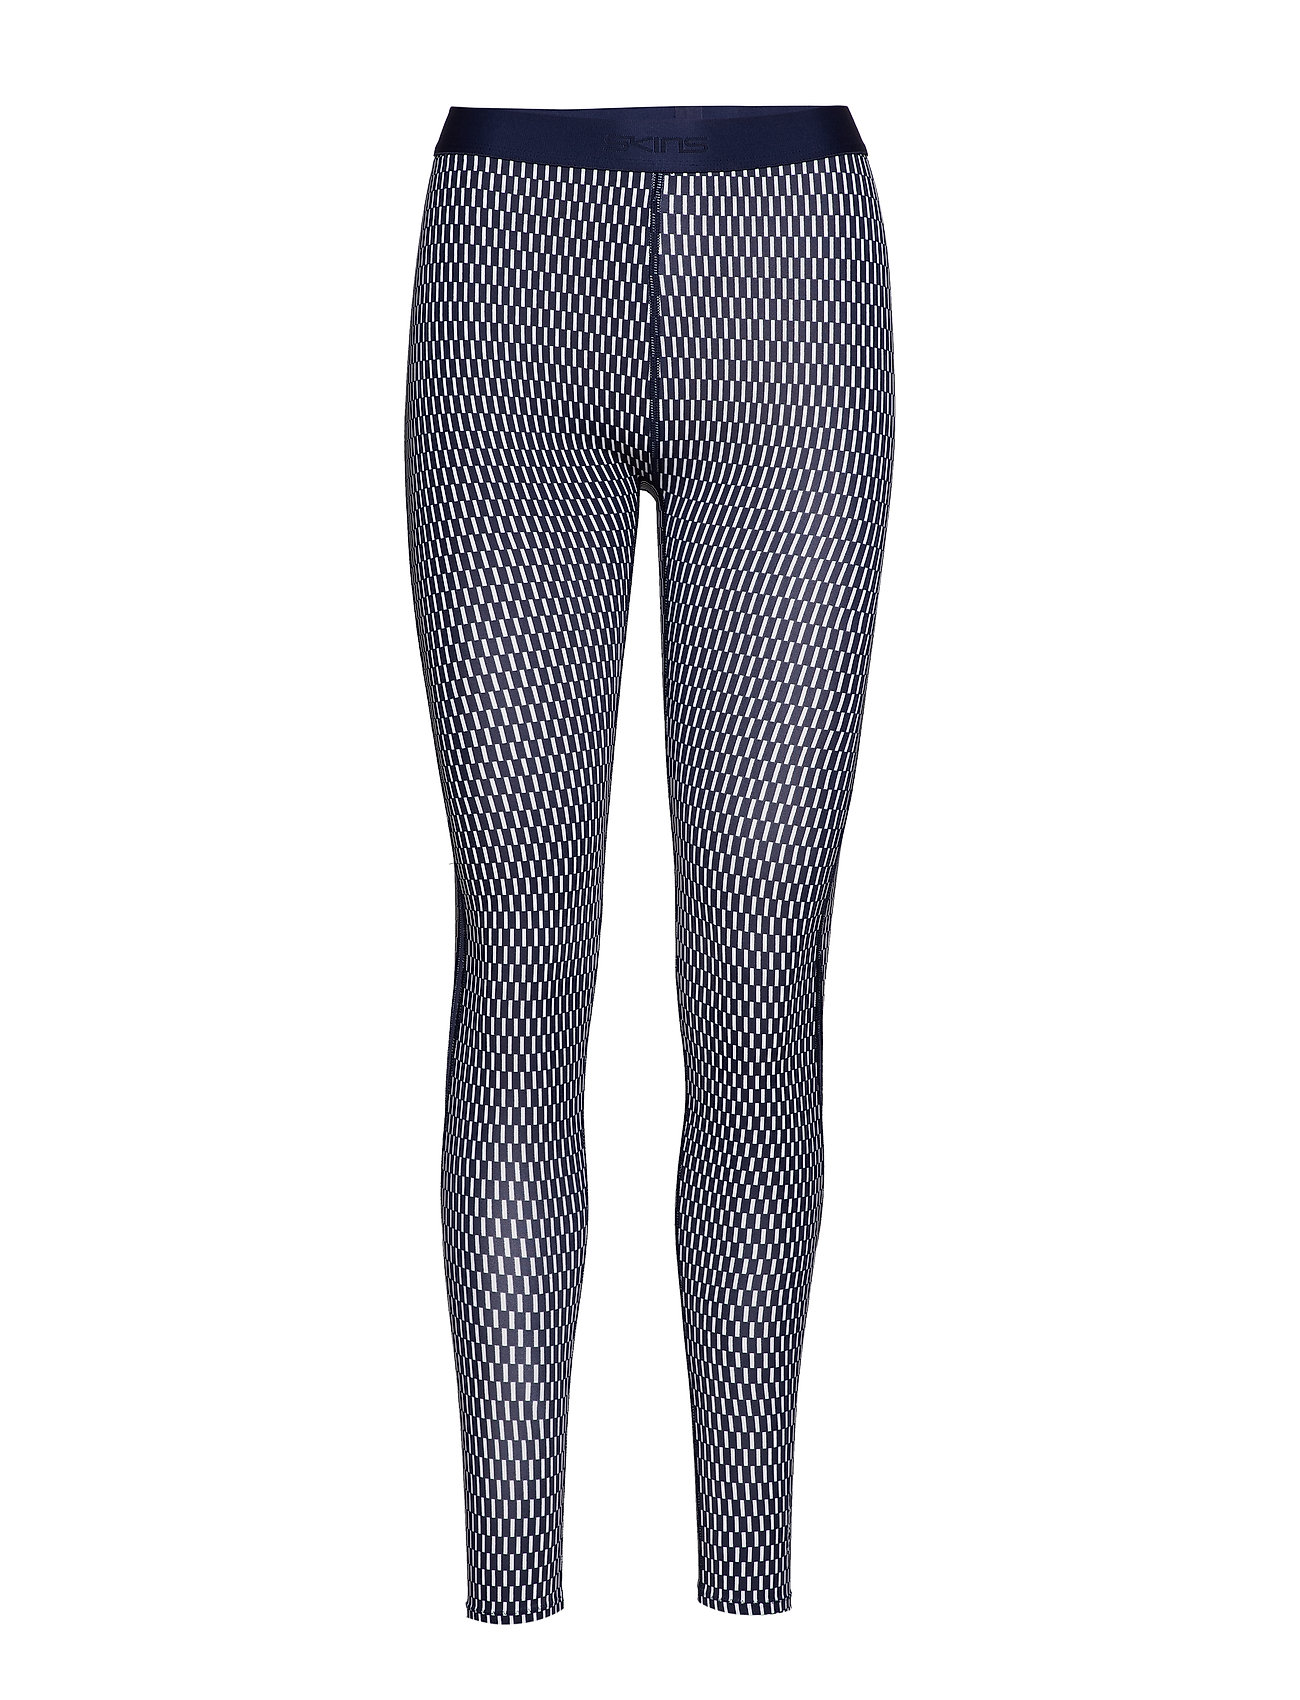 Skins DNAmic Womens Long Tights - TEXTURED SQUARE NAVY/WHITE